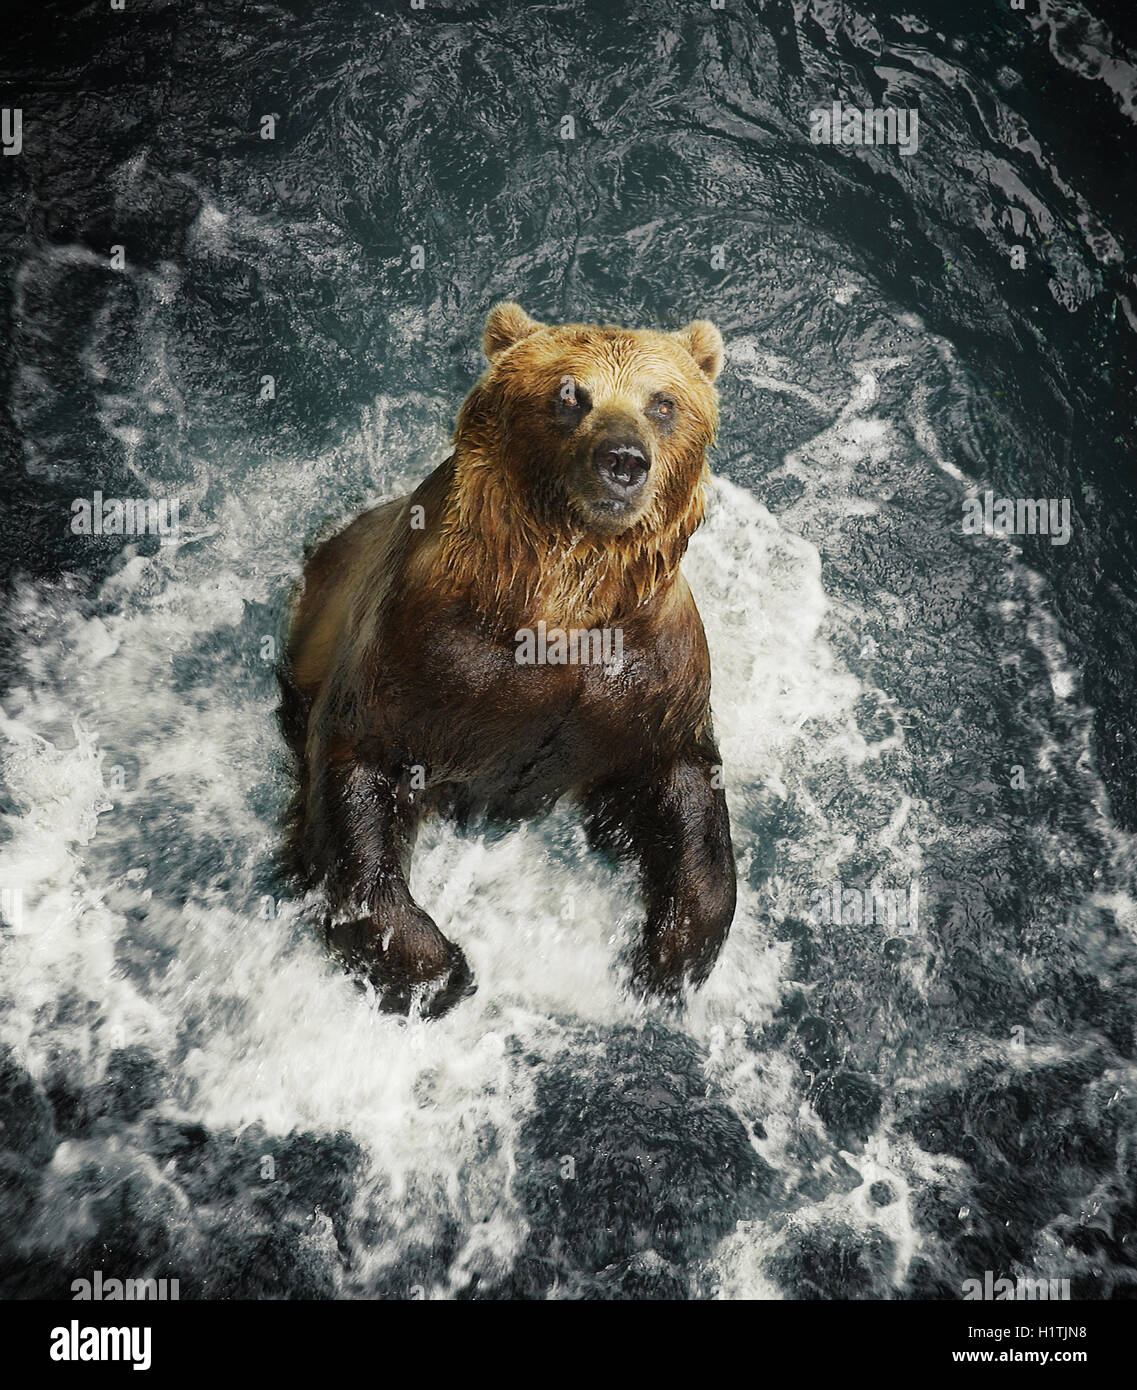 A grizzly bear splashes in water. - Stock Image